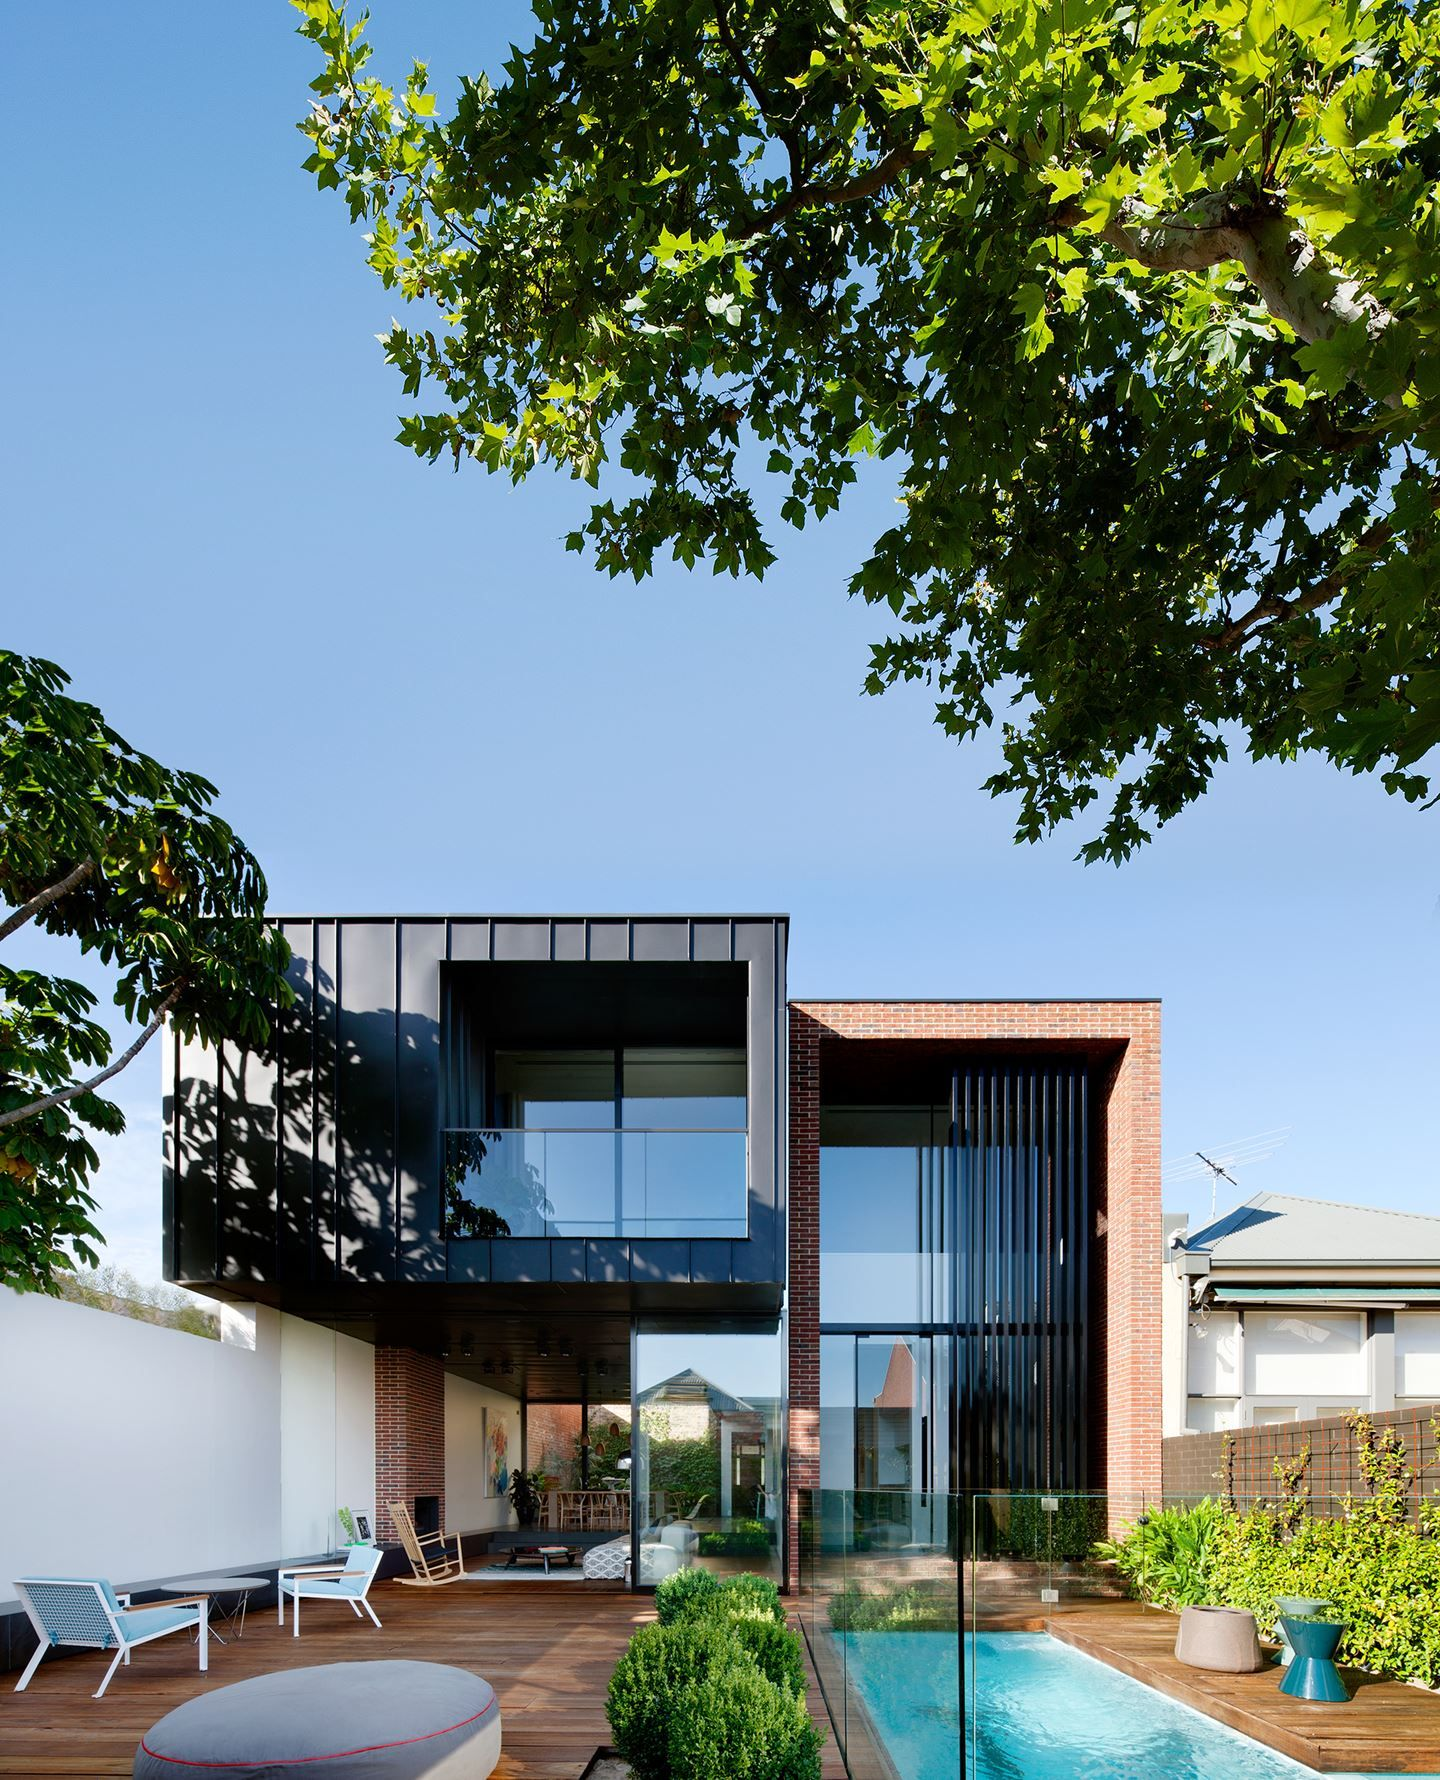 4/11 The ultra-modern addition at the rear of the house belies its ...